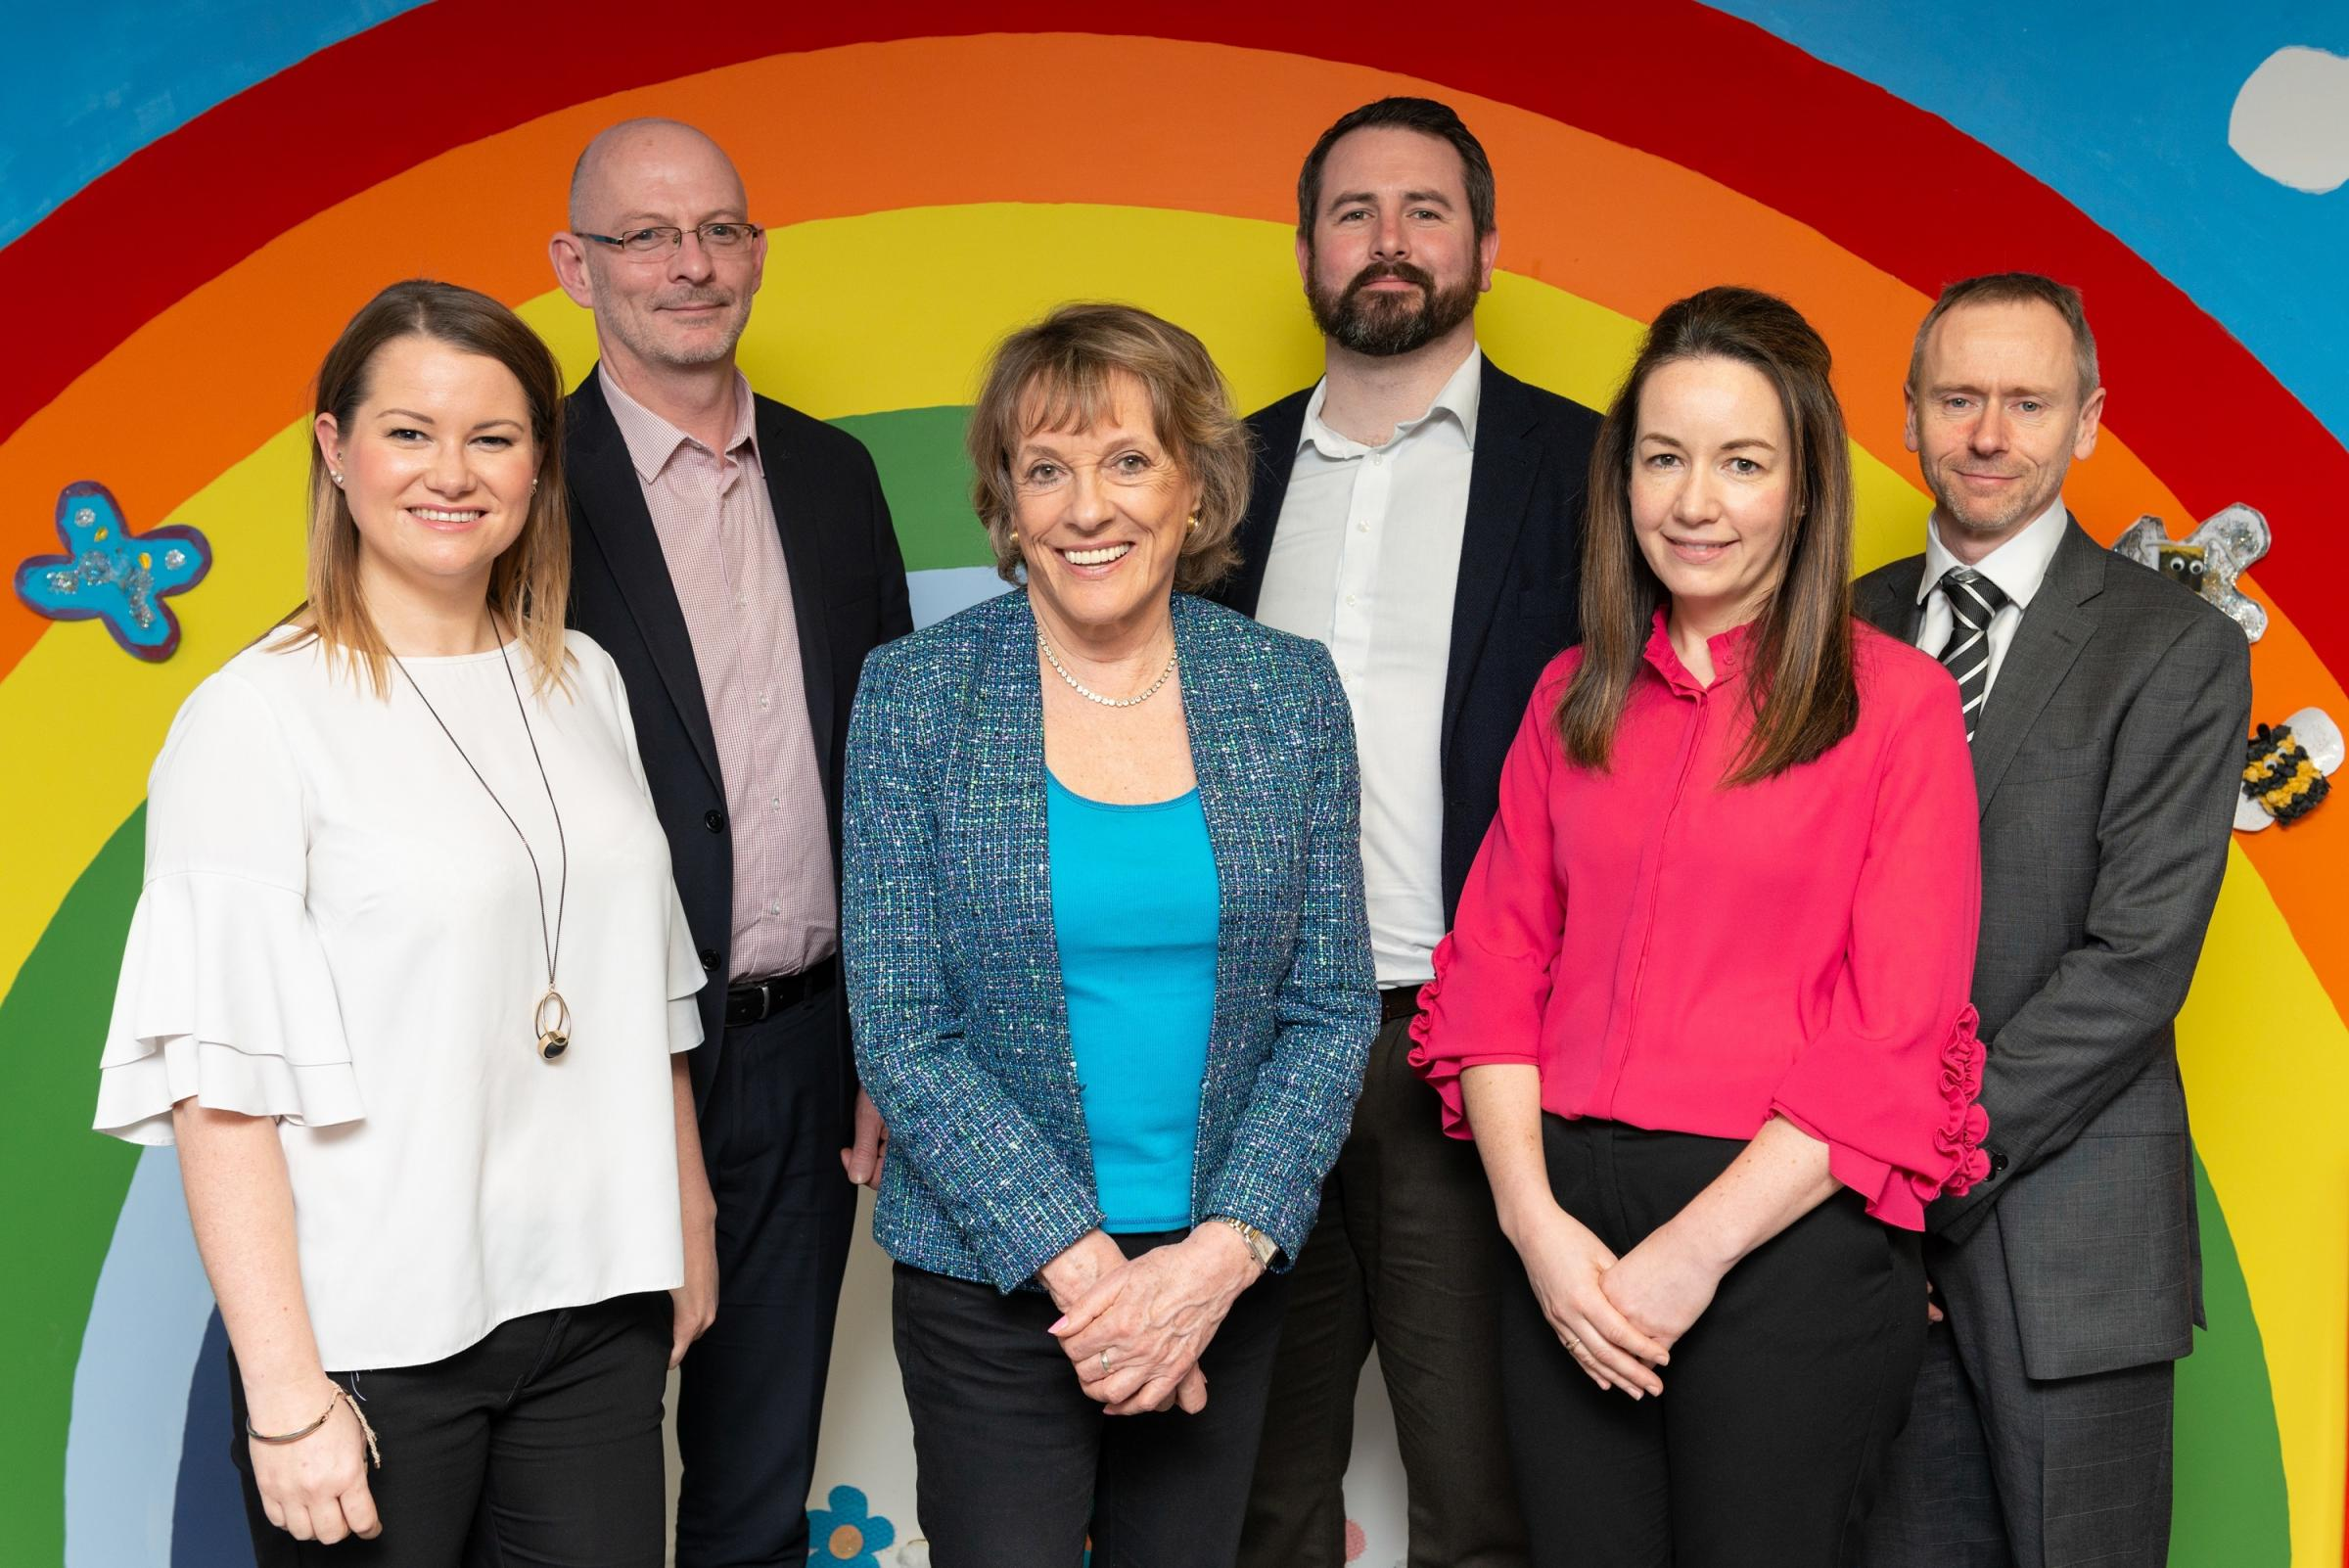 from left – Carris Wakefield, marketing manager; Kevin Thomas, group corporate development director; Jason Holtom, group operations director; Esther Rantzen; Ryan Owen, managing director of Wales and the South West; Nia Cooper, group HR and legal di